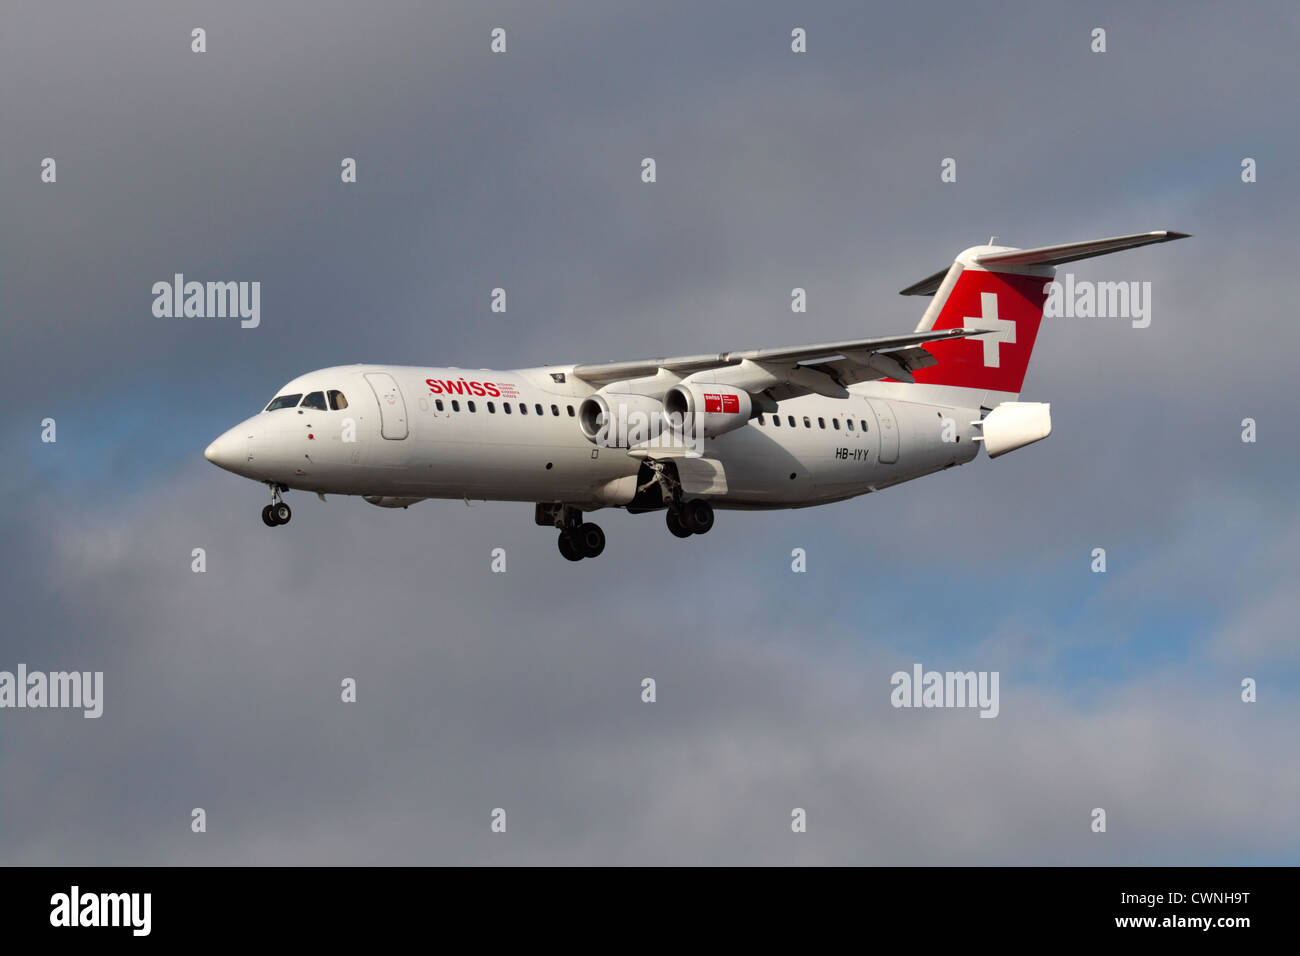 Swiss European Air Lines Avro RJ100 regional jet or small airliner flying on approach with tail airbrakes open. - Stock Image